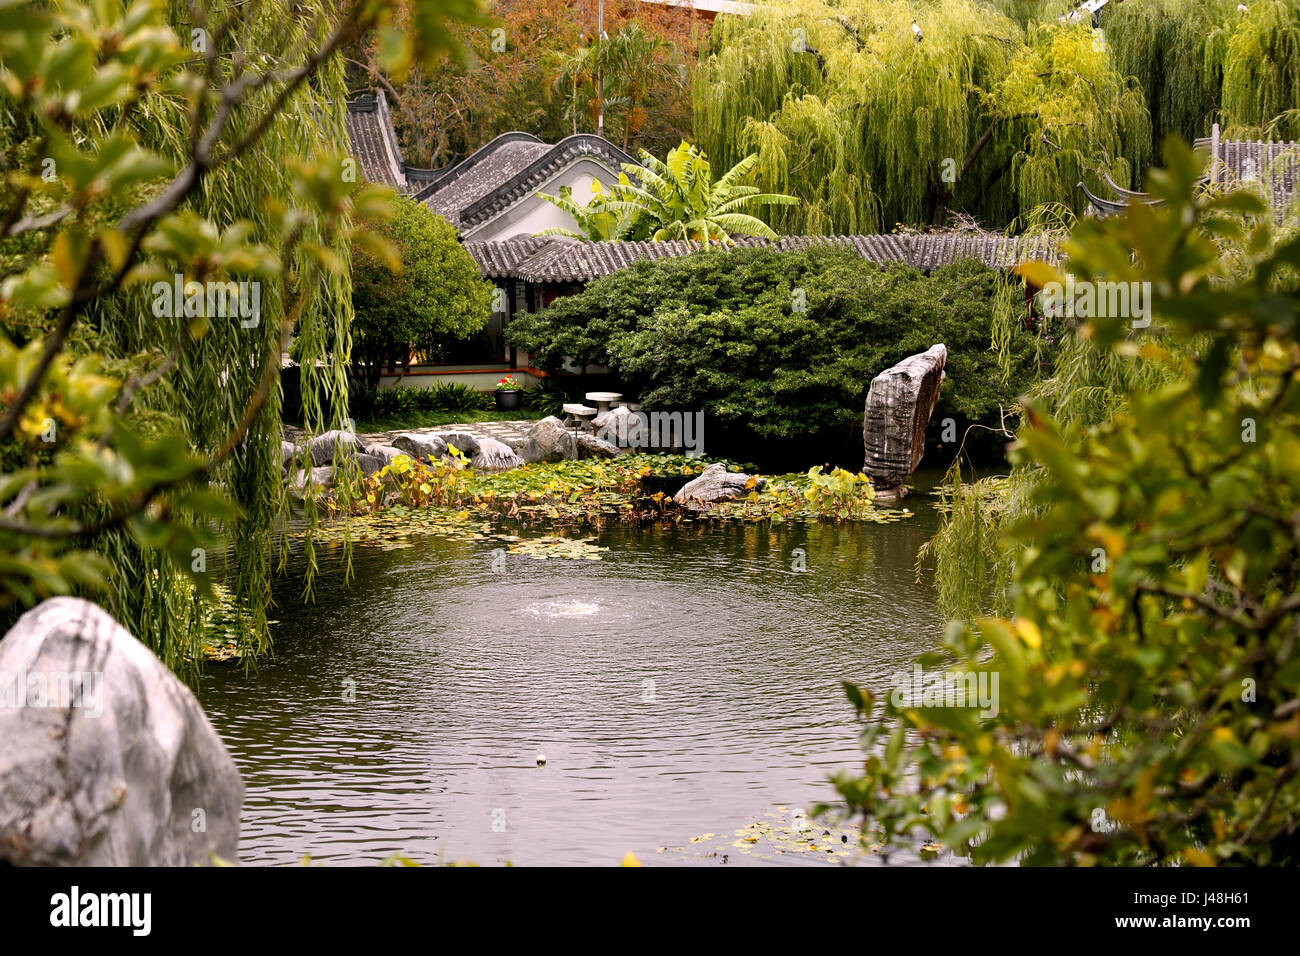 A pond at the 'Chinese Garden of Friendship' in Sydney, Australia - Stock Image